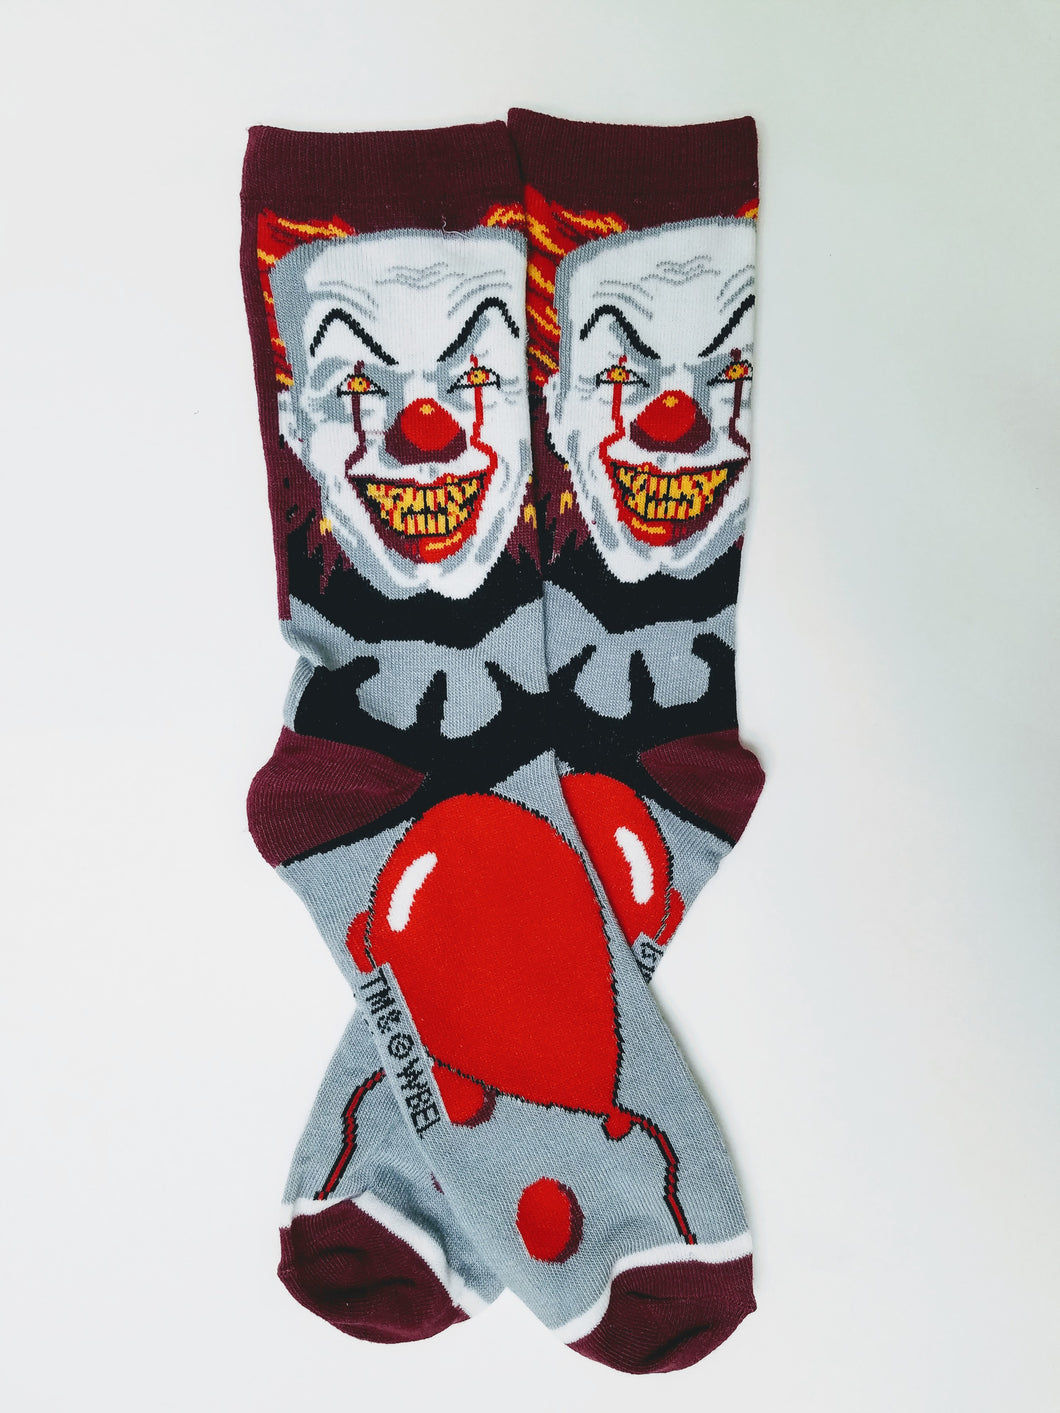 IT Clown Crew Socks